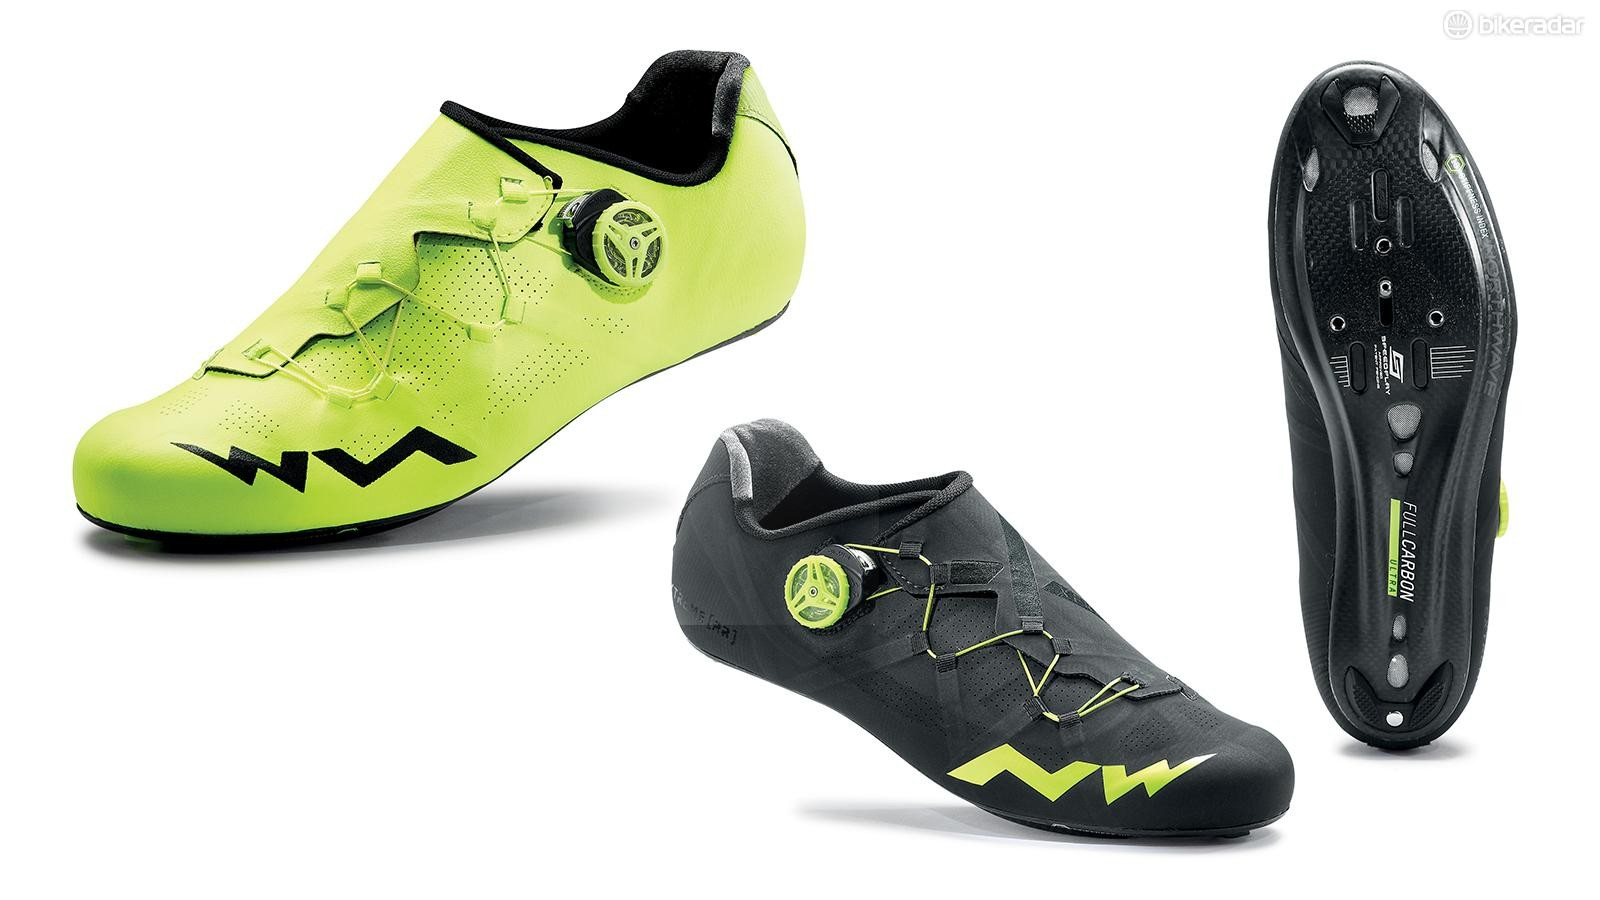 Road-cycling shoes have a stiff sole for good power transfer